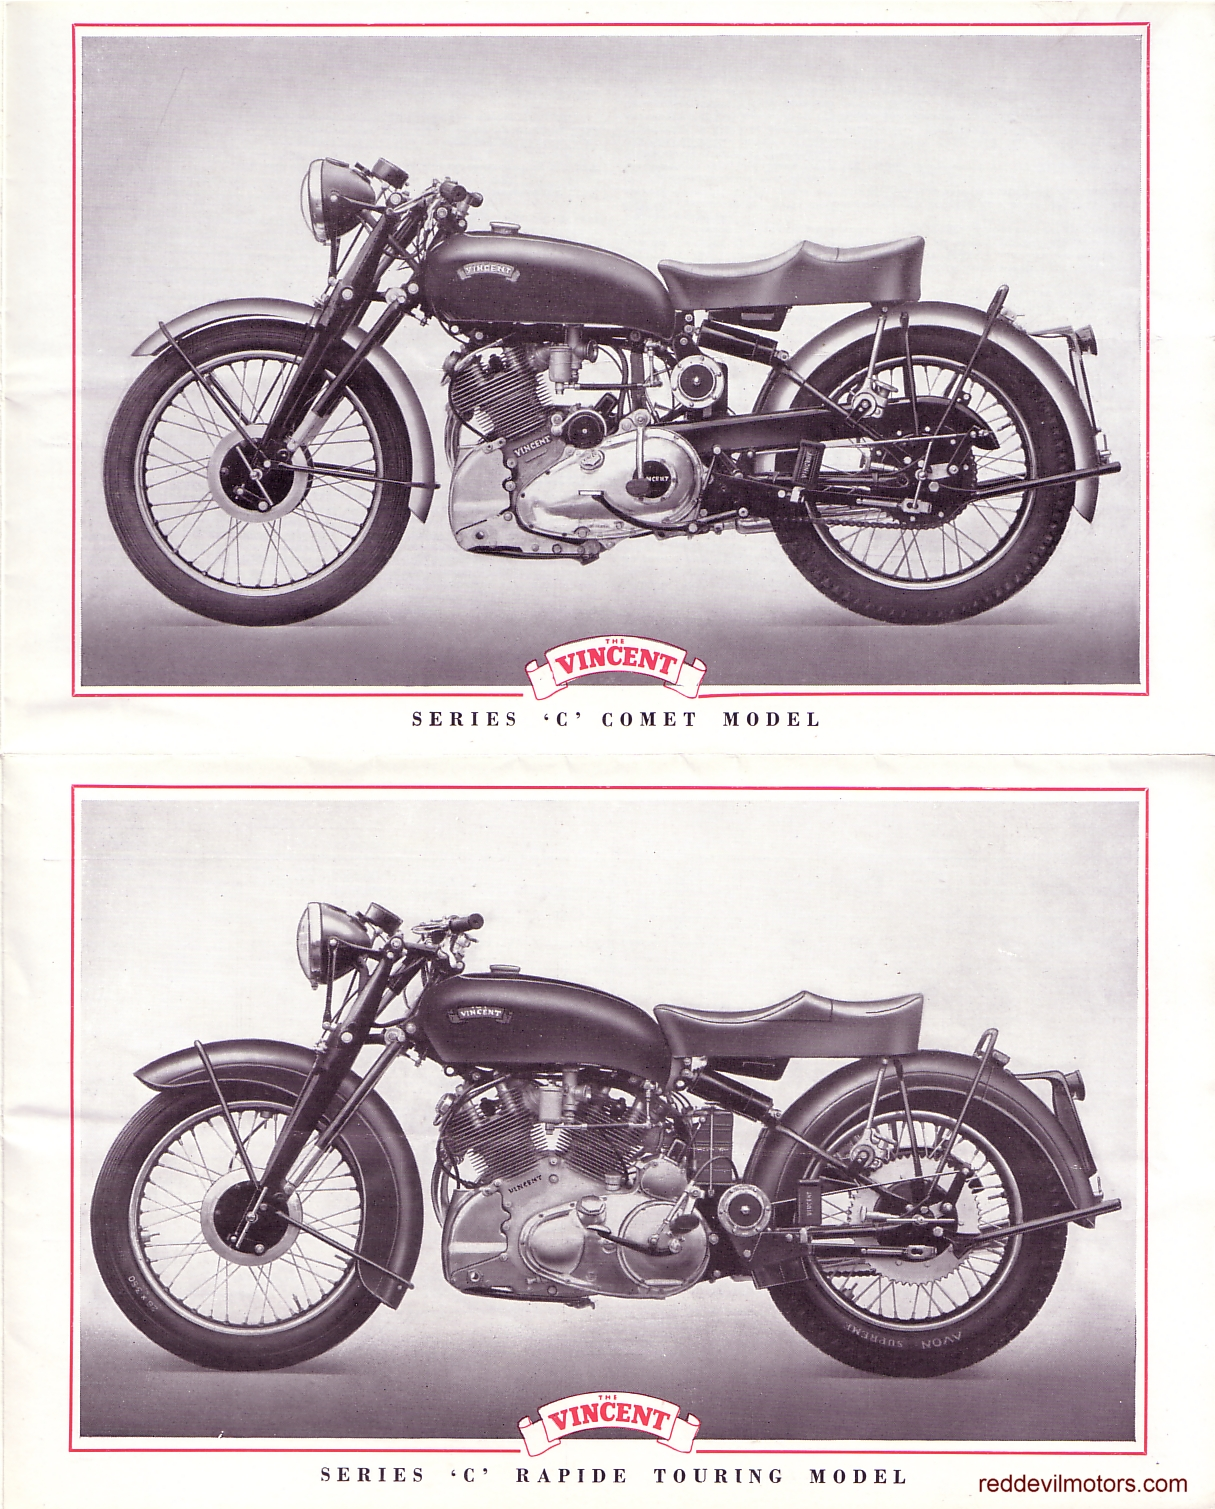 Vincent motorcycles 1952 brochure page 3